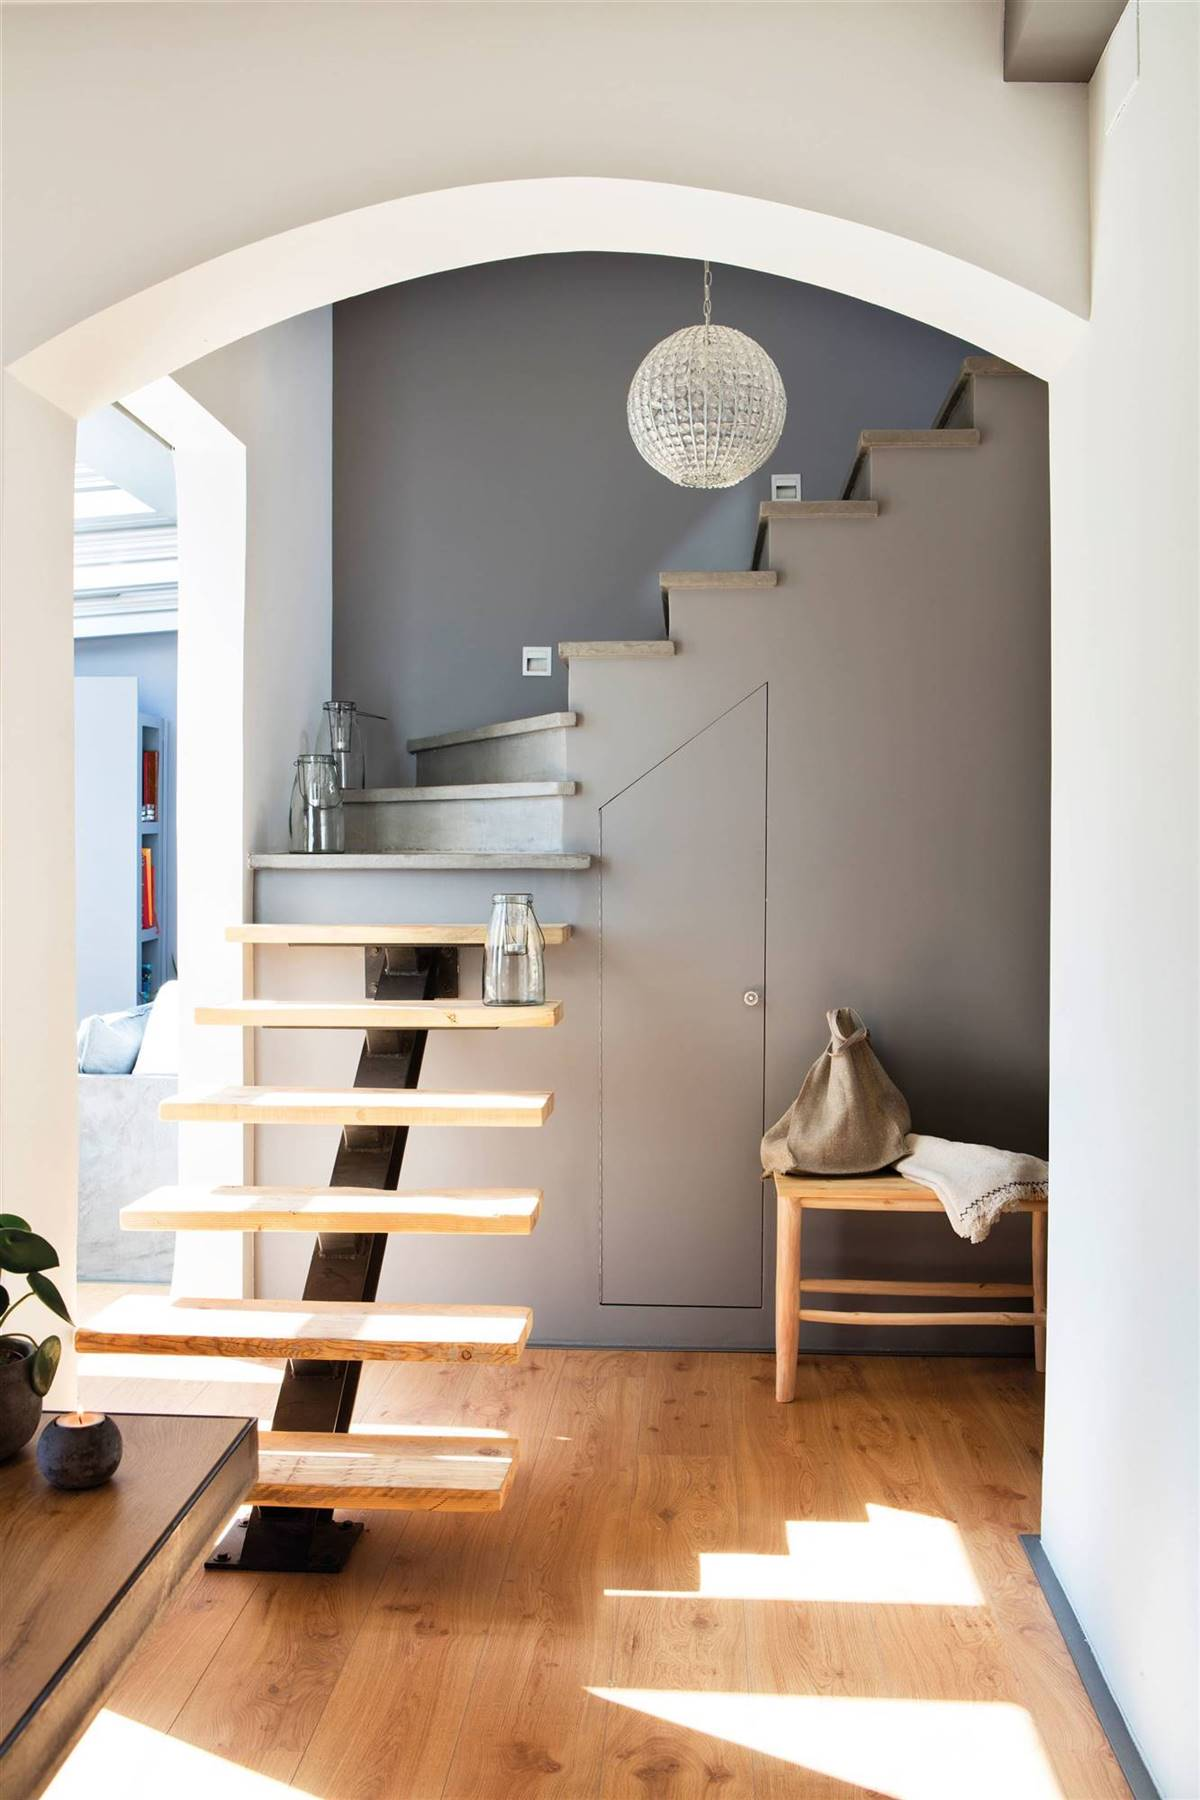 WITH CUPBOARD UNDER THE STAIRS